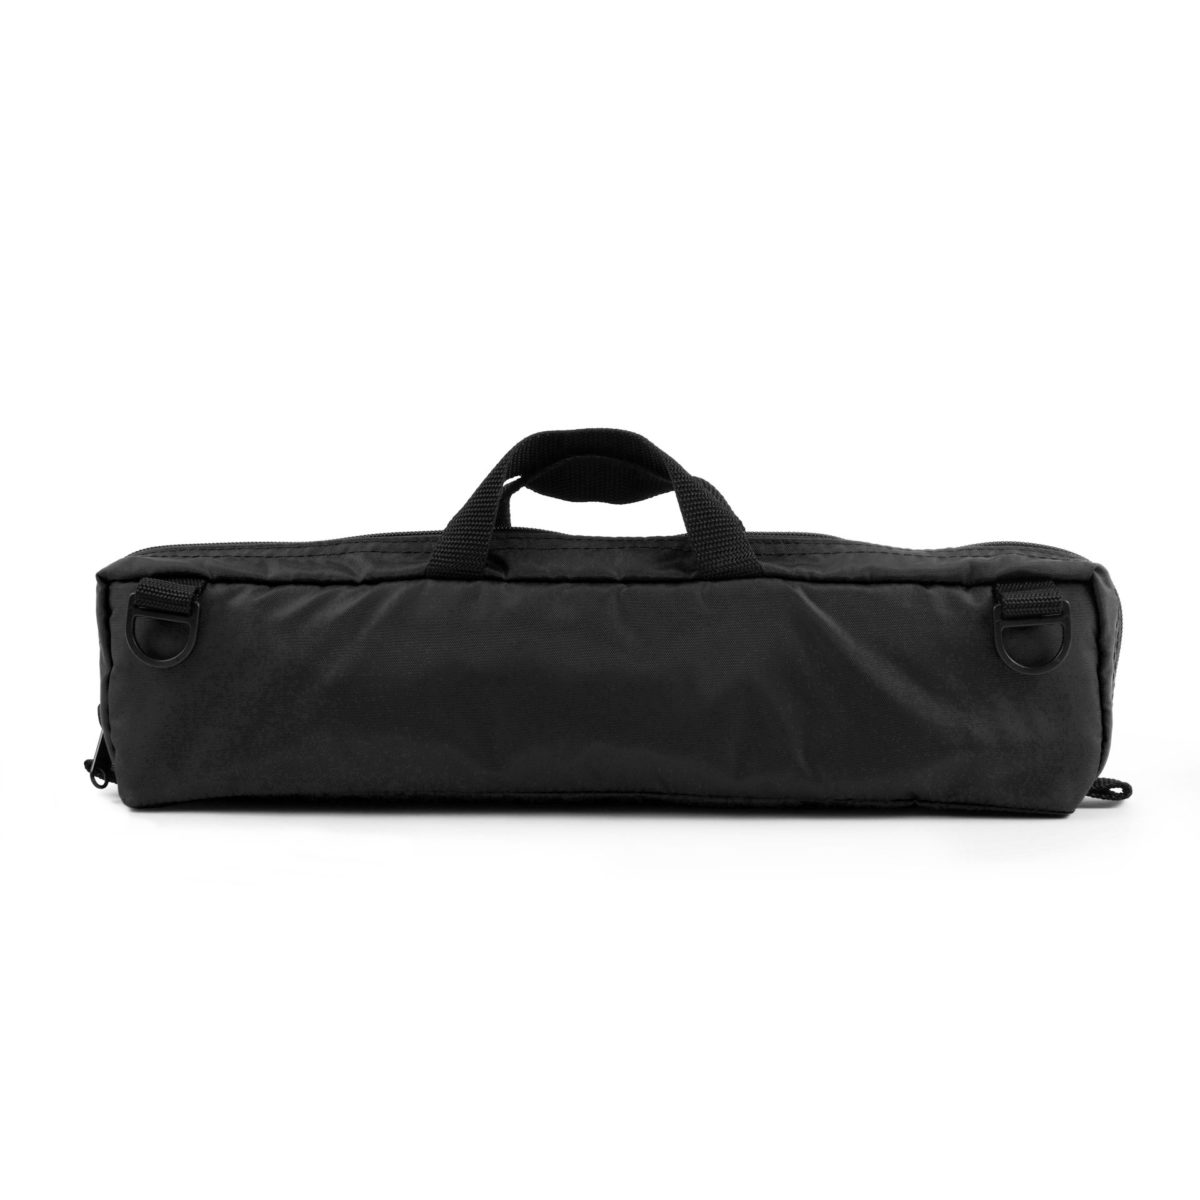 Altieri Flute B Foot Casecover Back View FLCC BF BK000